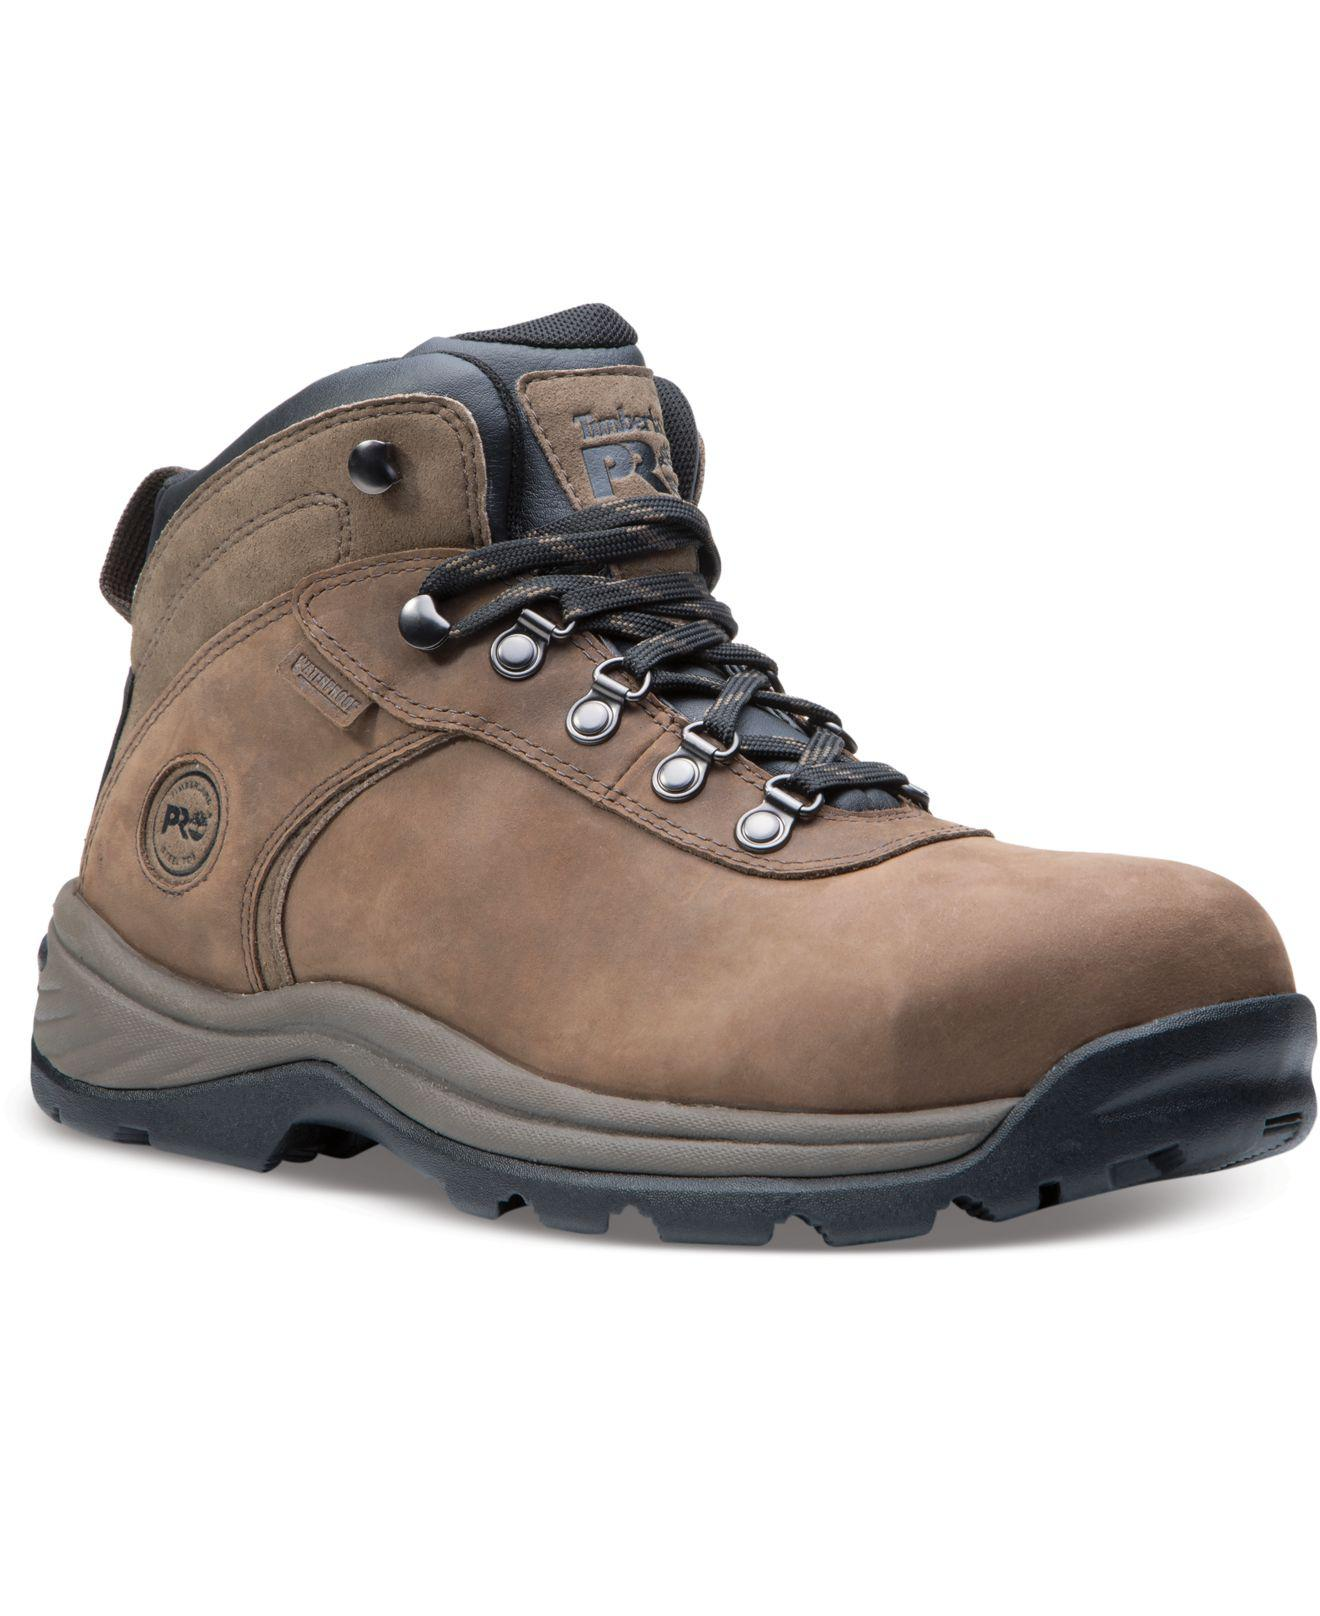 Timberland Leather Pro Flume Mid Waterproof Steel Toe Work Boots In Brown For Men Lyst